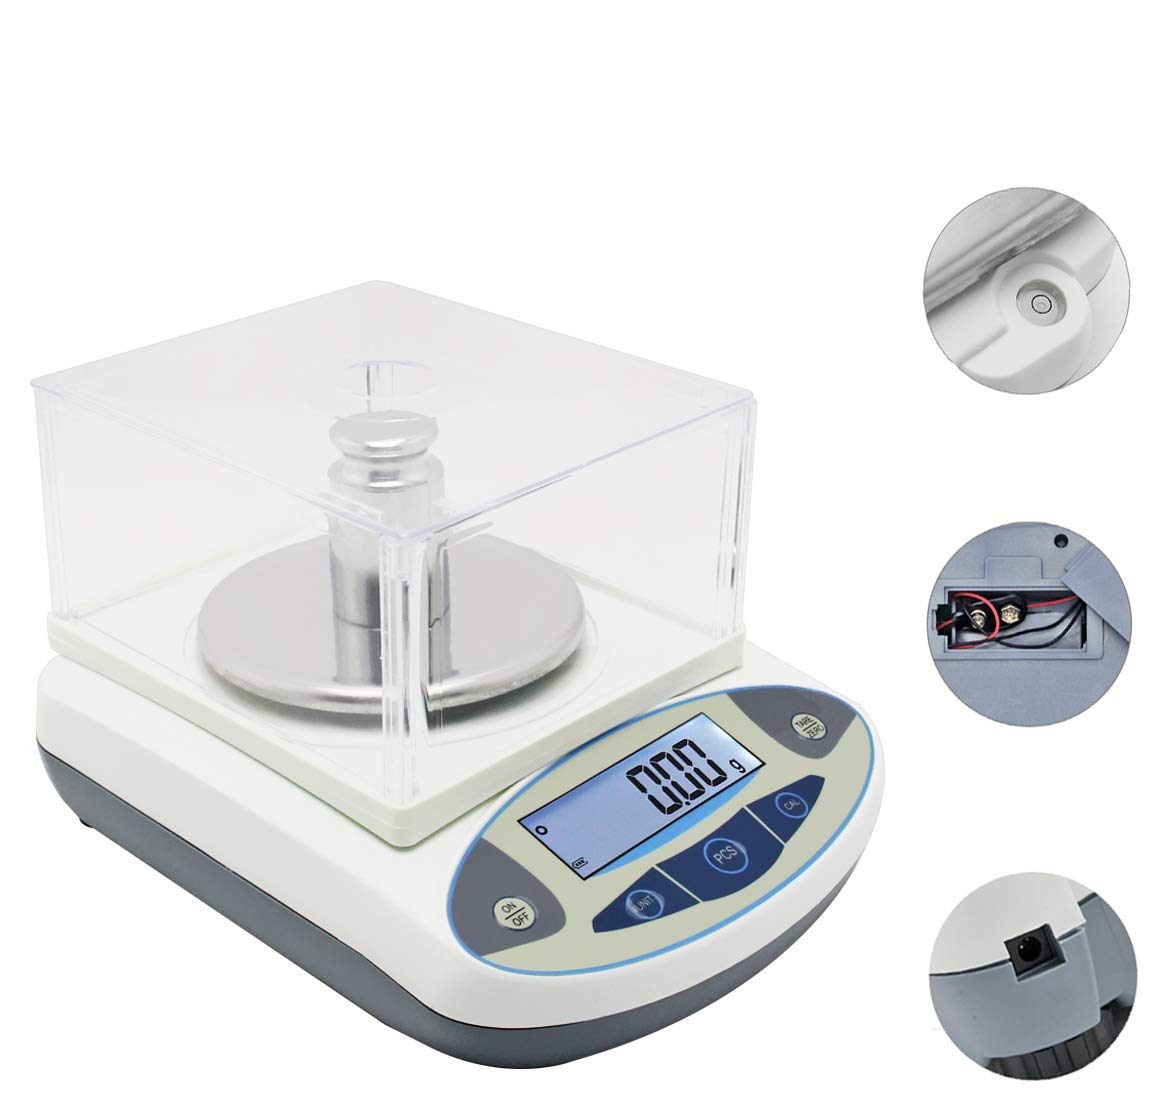 CGOLDENWALL High Precision Lab Scale Digital Analytical Electronic Balance Laboratory Lab Precision Scale Jewelry Scales Kitchen Precision Weighing Electronic Scales 0.01g Calibrated (300g, 0.01g)